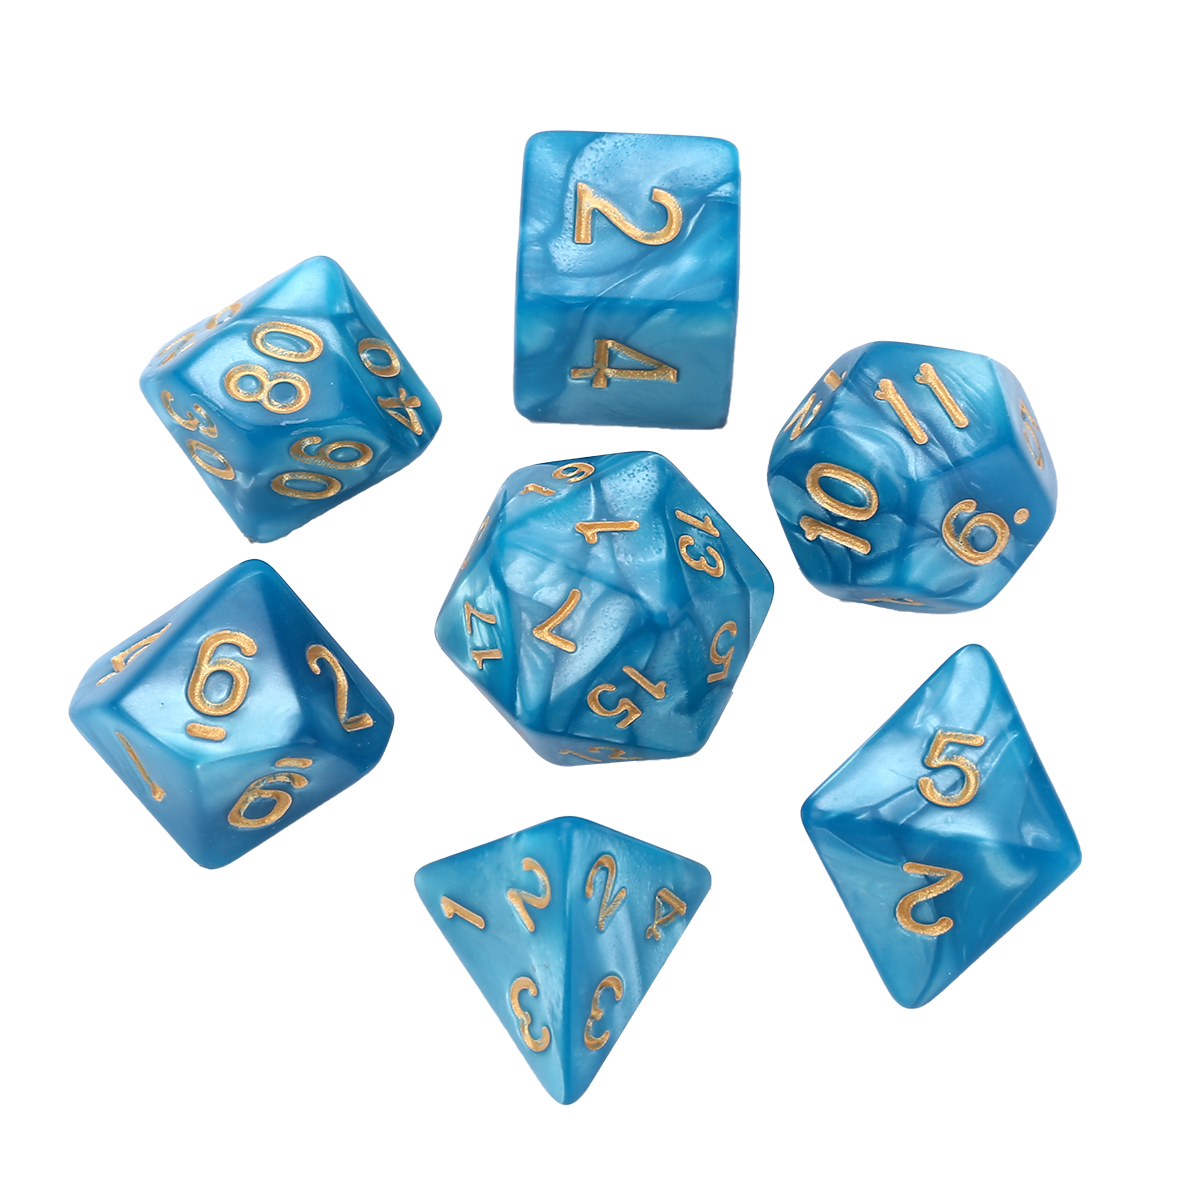 Funny Dices 7pcs/set Blue Polyhedral Dice 16mm for Dungeons and Dragons Dice RPG Table Board Games Multi-side Dices